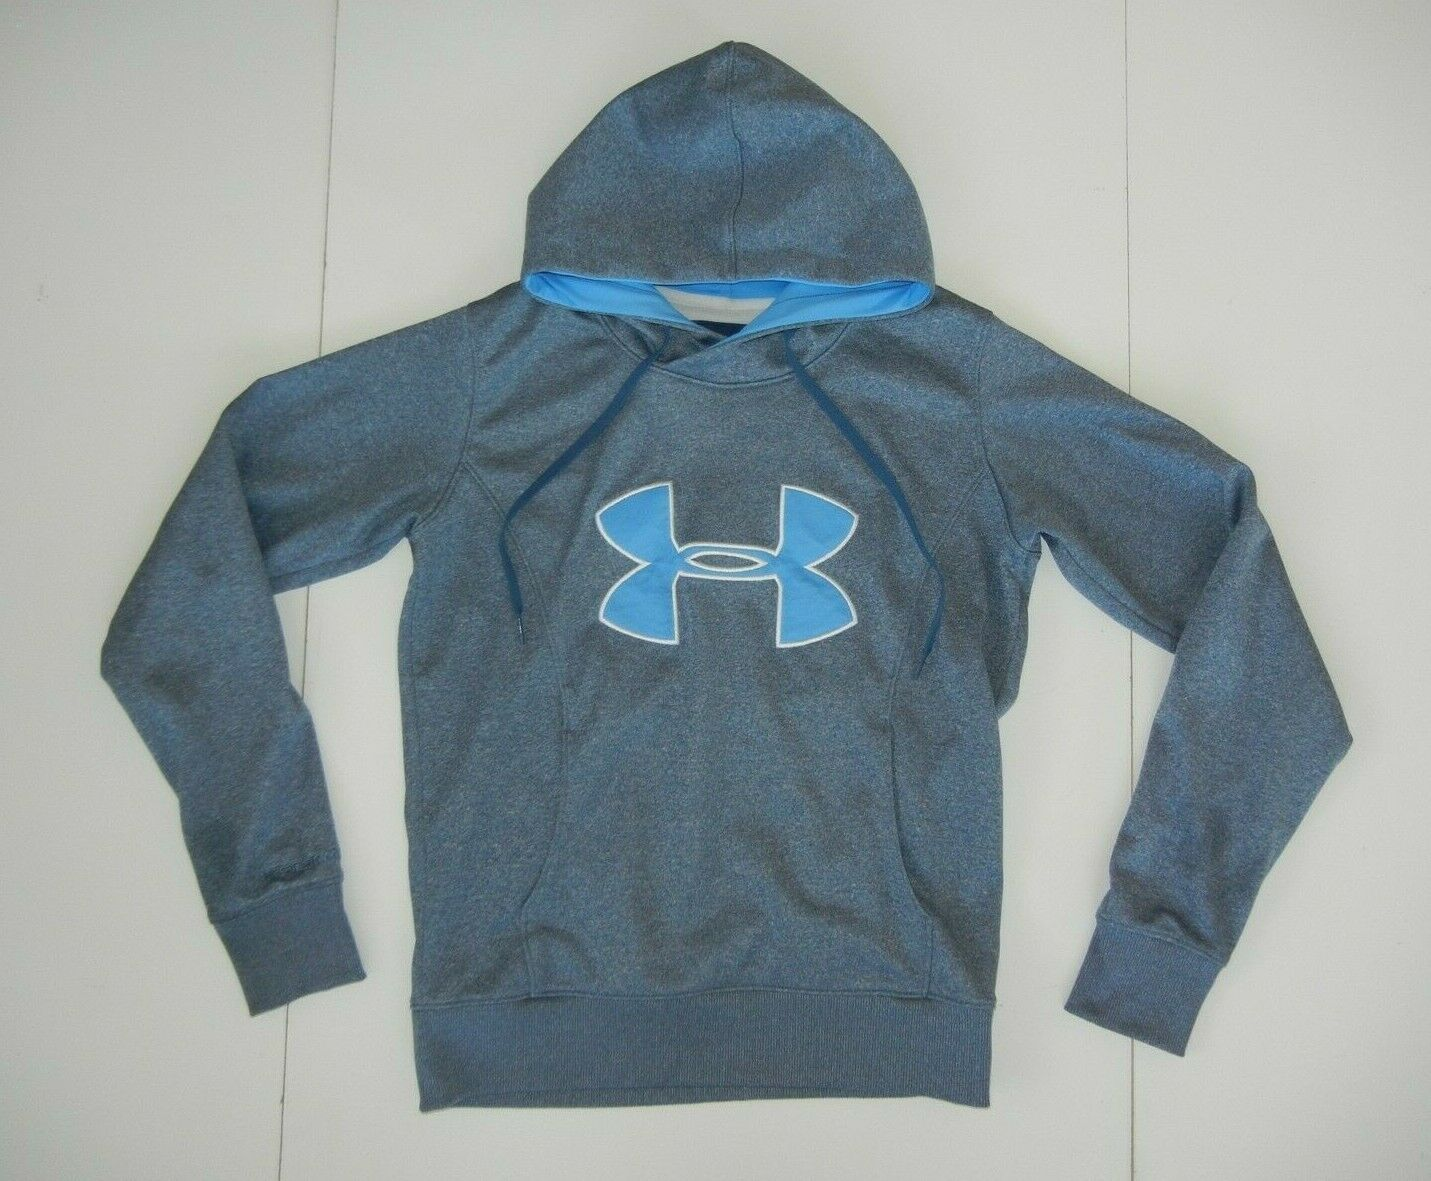 NWT MEN/'S UNDER ARMOUR BLUE COLDGEAR REACTOR STORM FITTED BLUE HOODIE JACKET MED